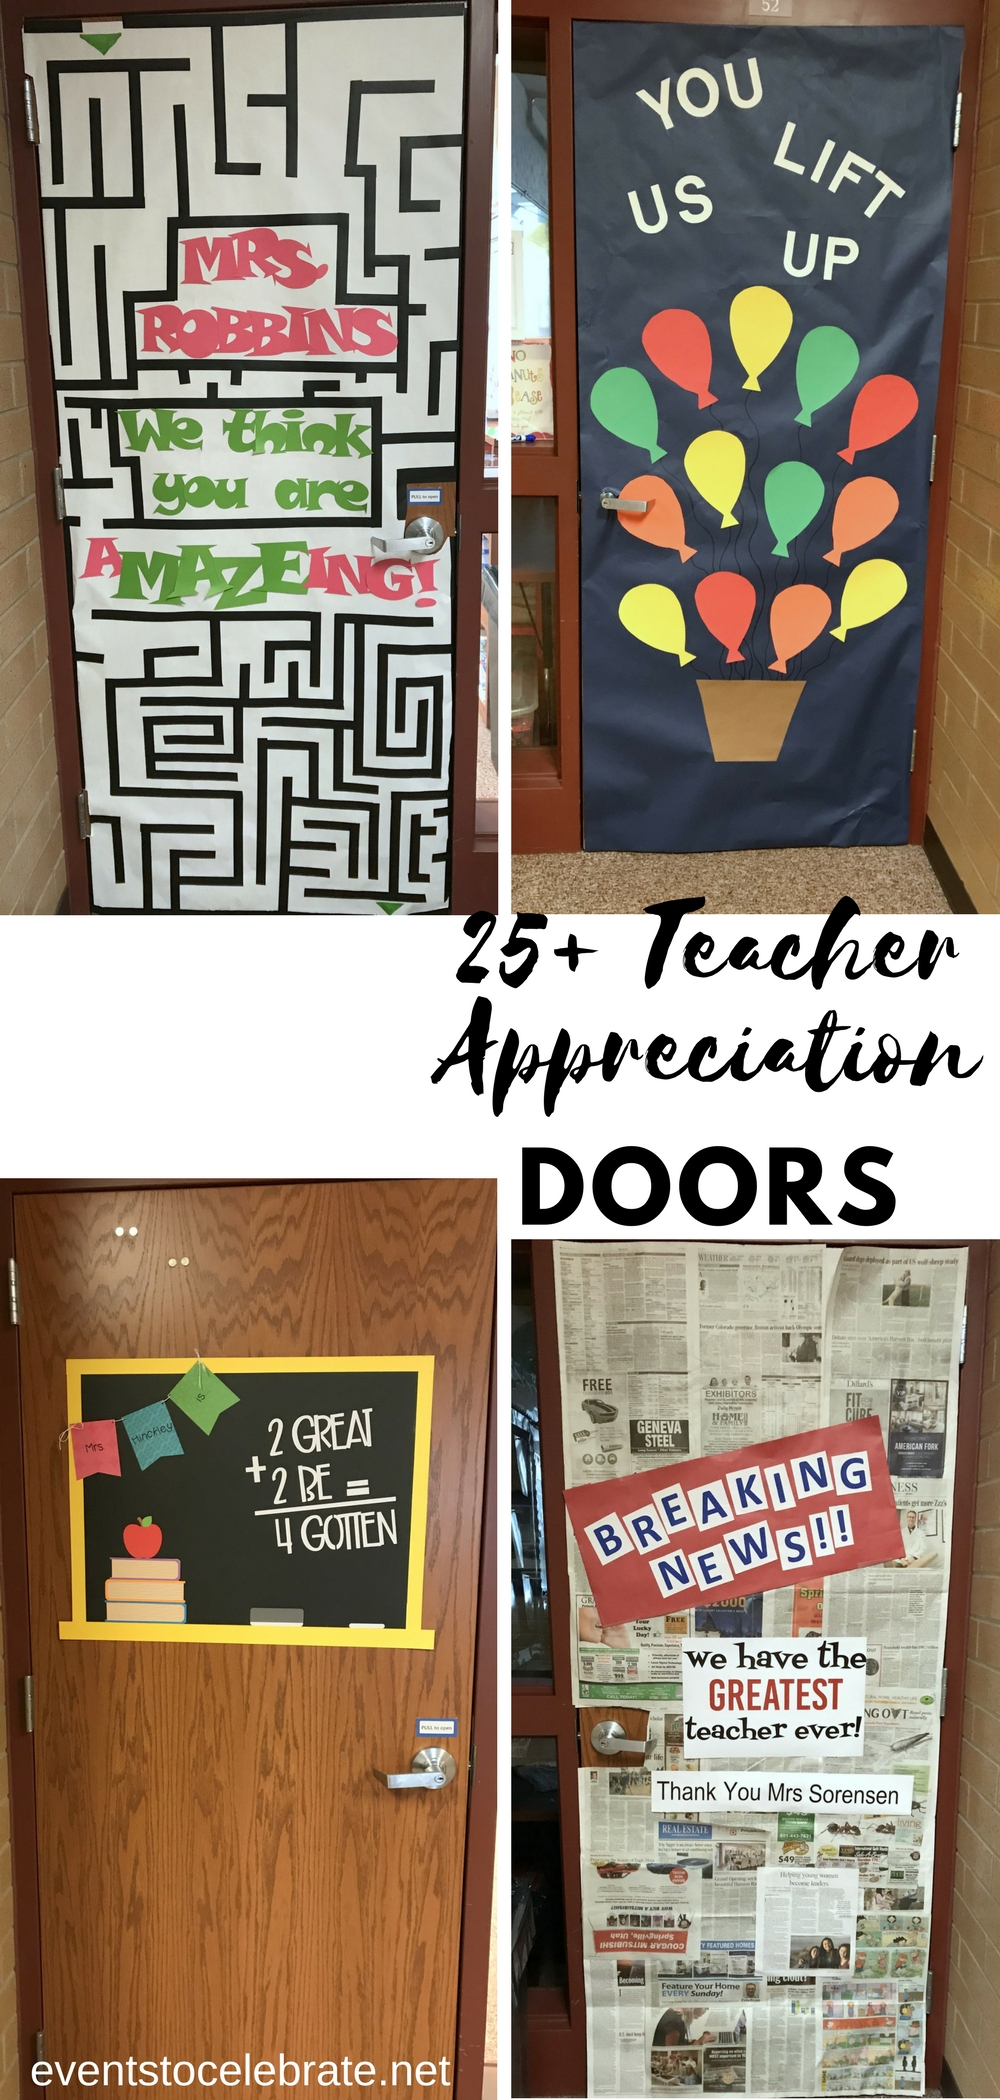 30 Teacher Appreciation Door Decoration Ideas Events To Celebrate